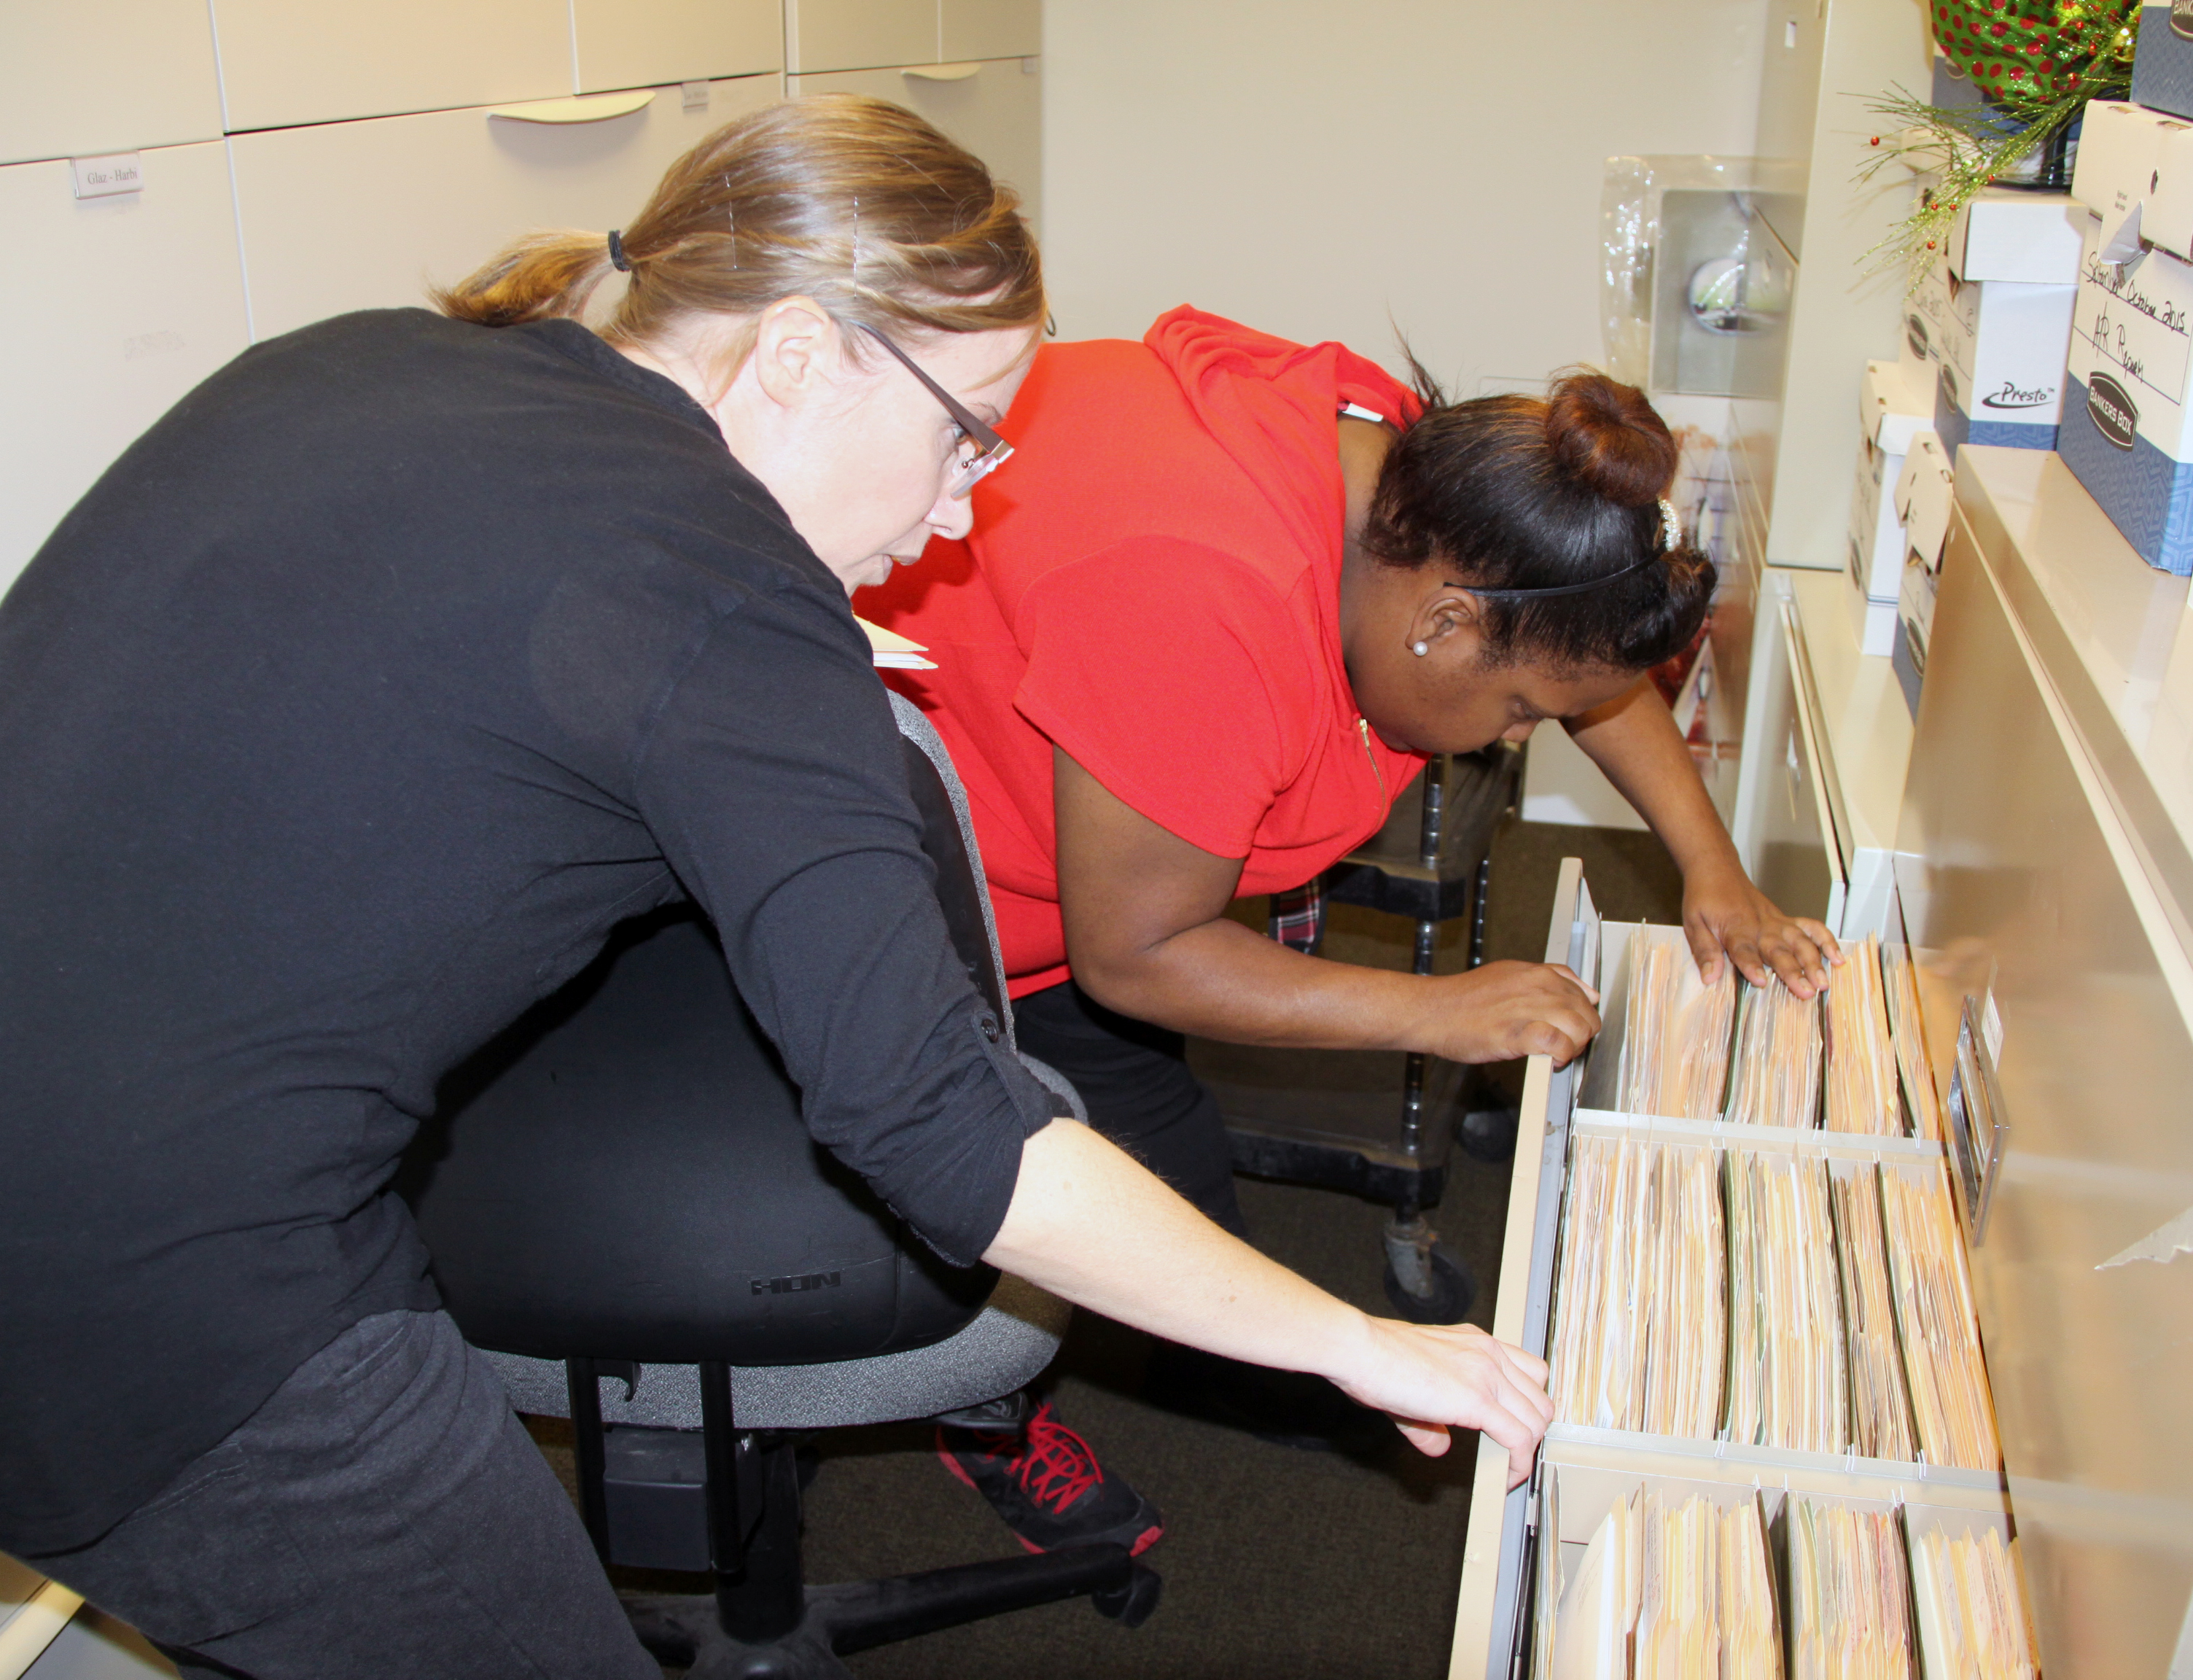 Wendy Lawless, a job coach with UCP of Greater Birmingham, works with a GATE Program trainee in the file room of The Club